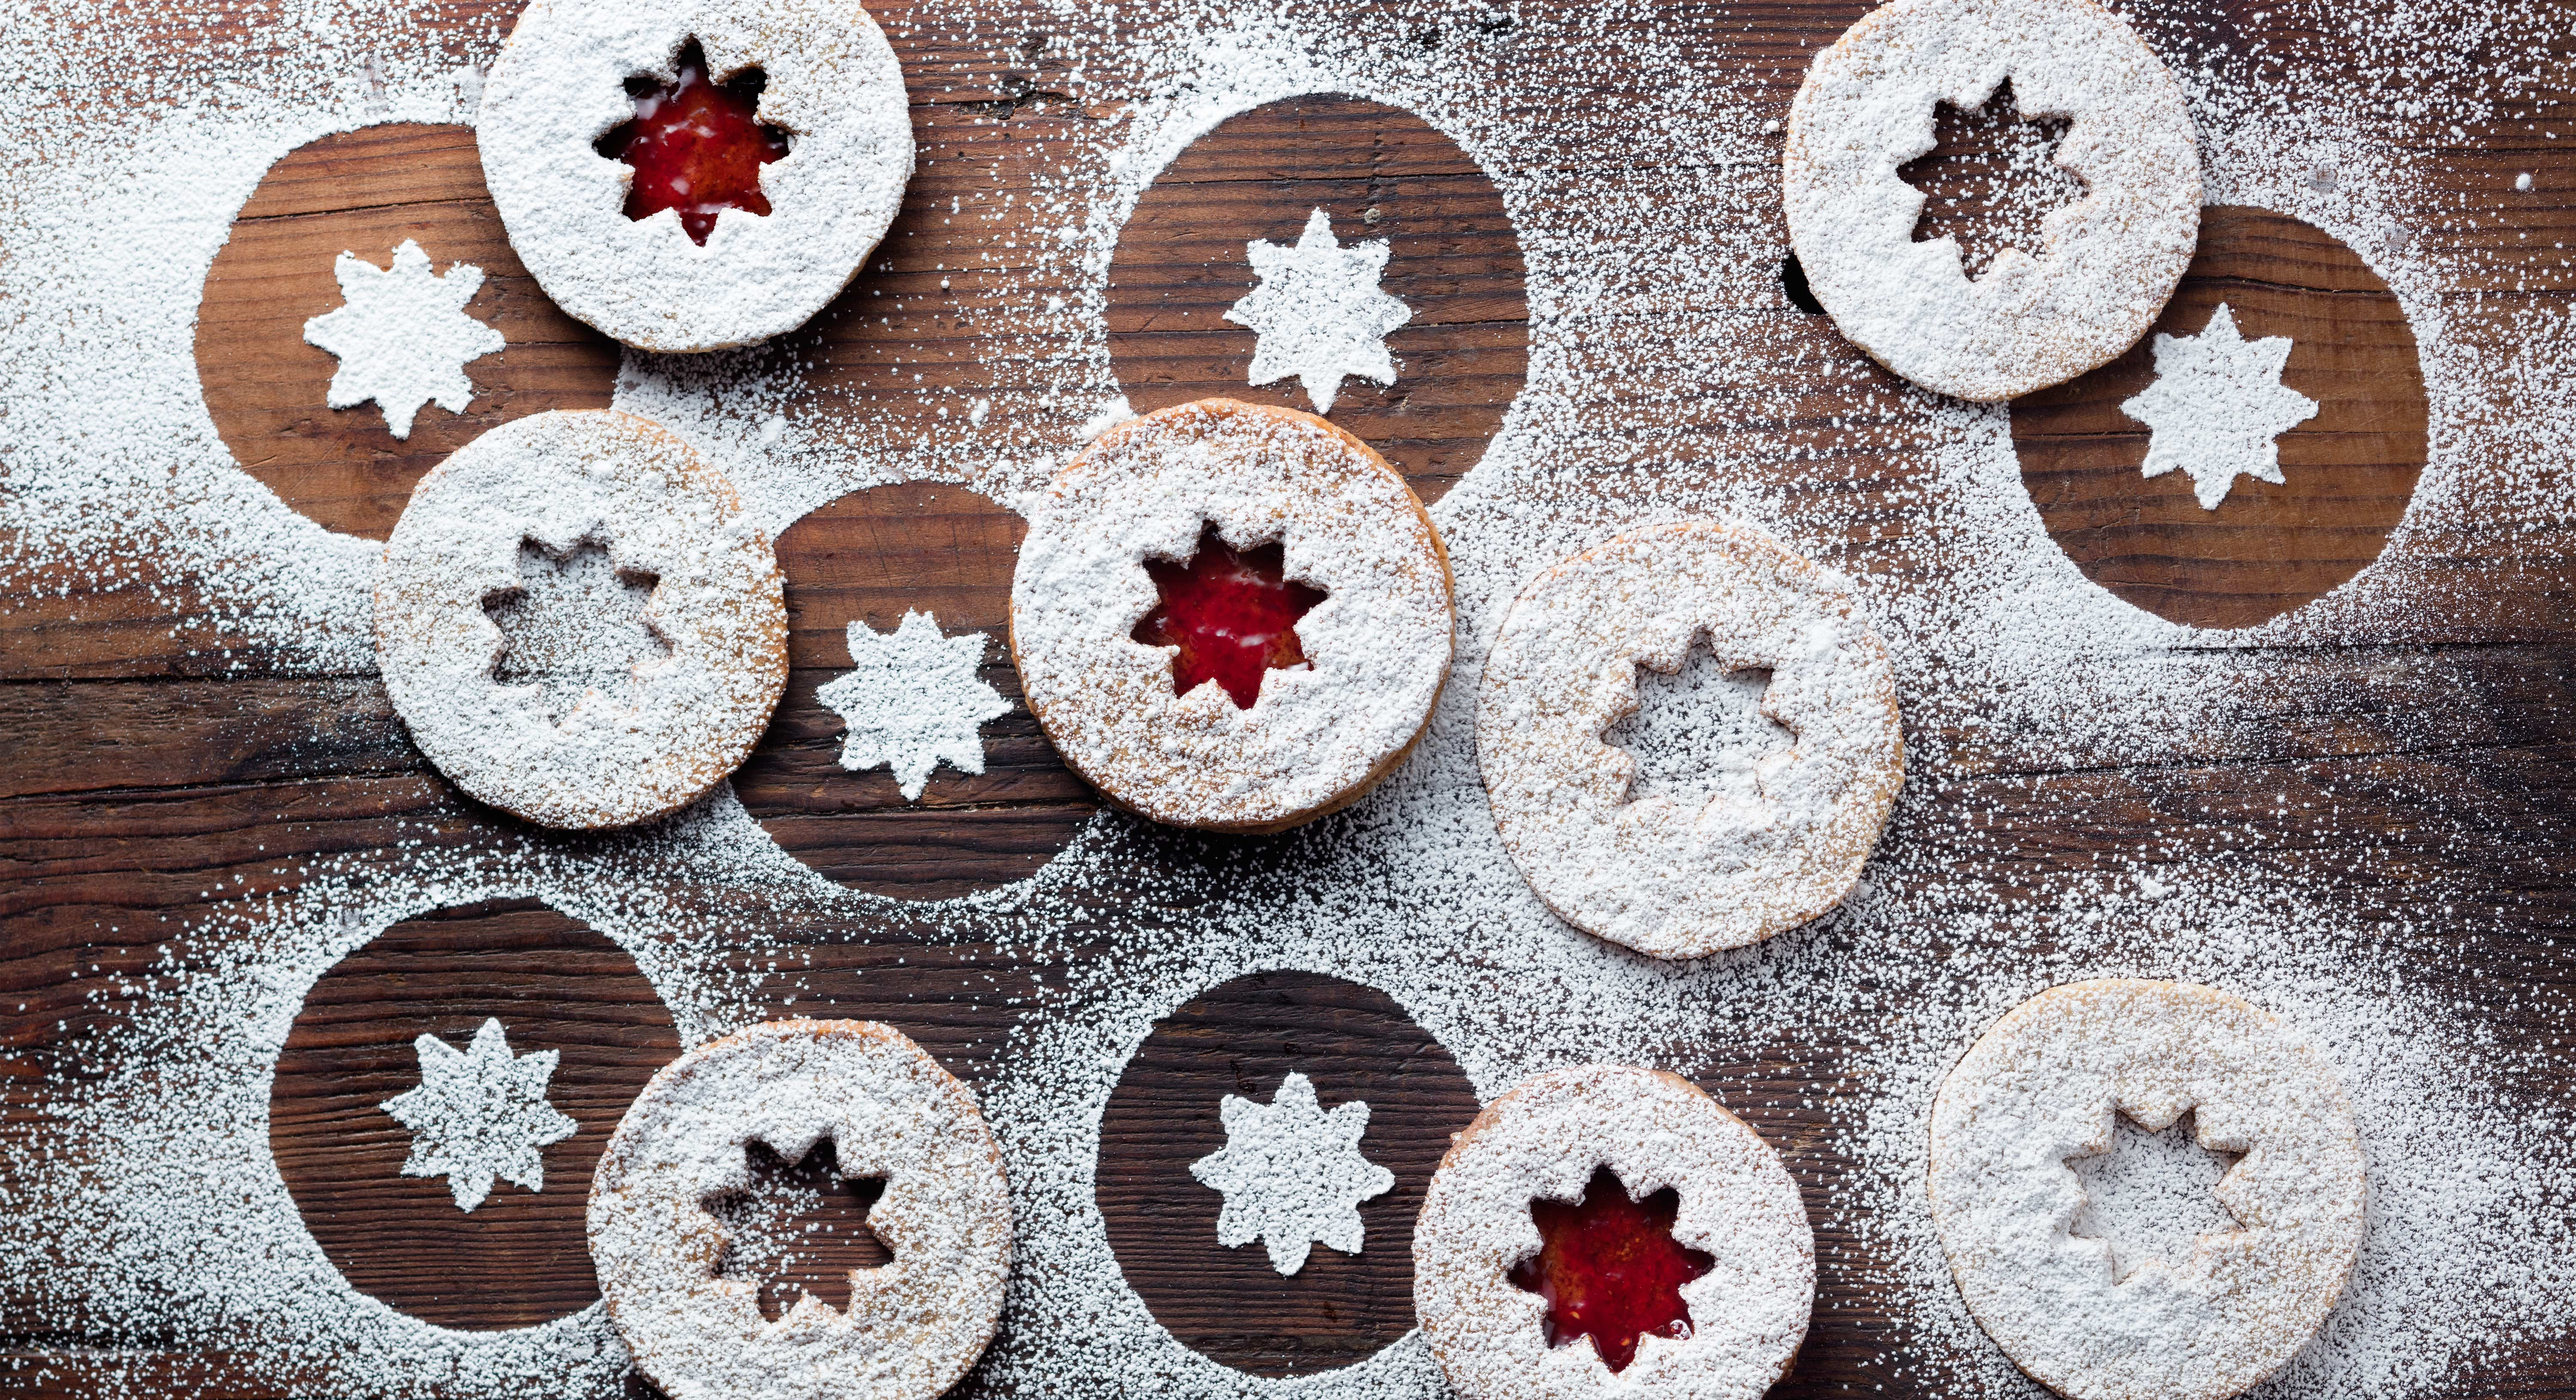 Holiday Desserts That Make Great Gifts